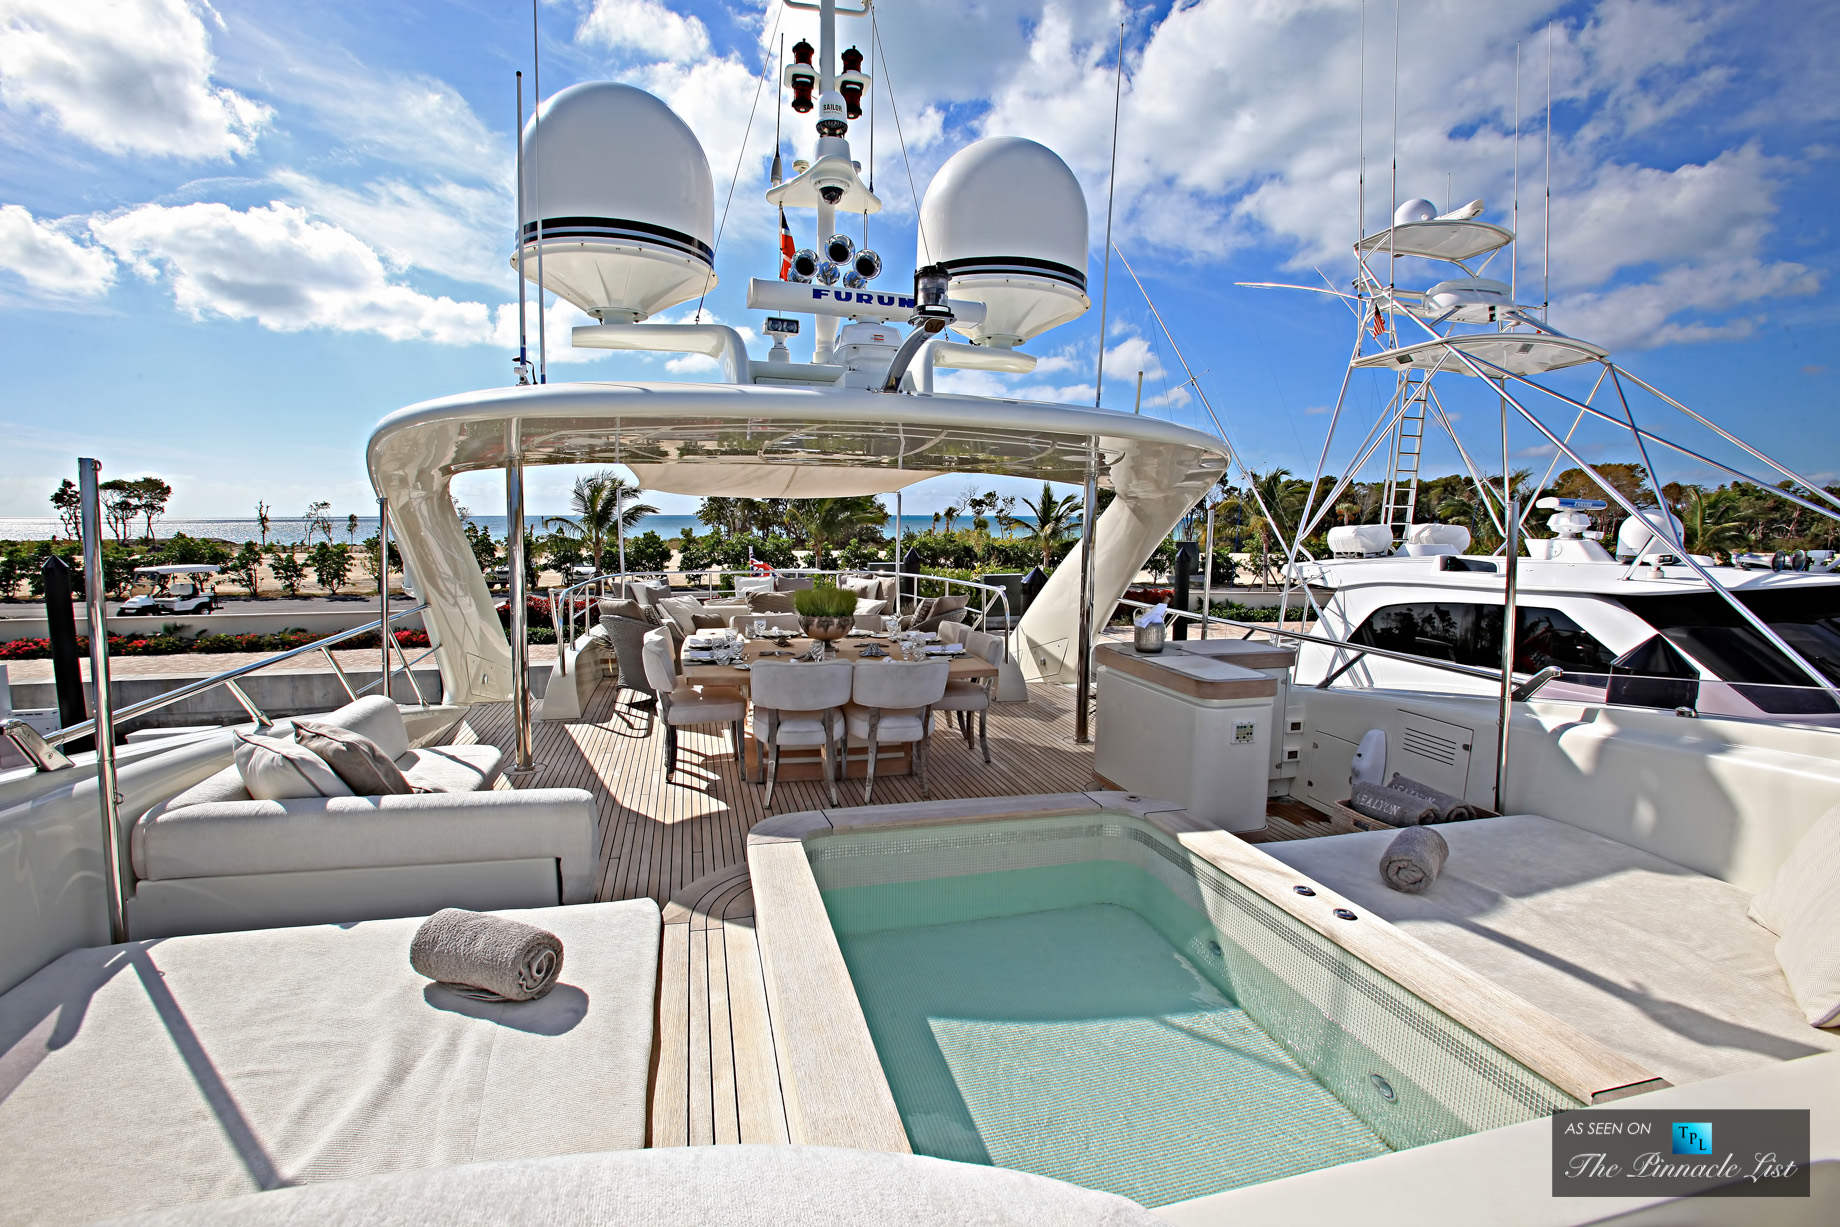 Sealyon Superyacht - Charter Availability for Caribbean and South Pacific